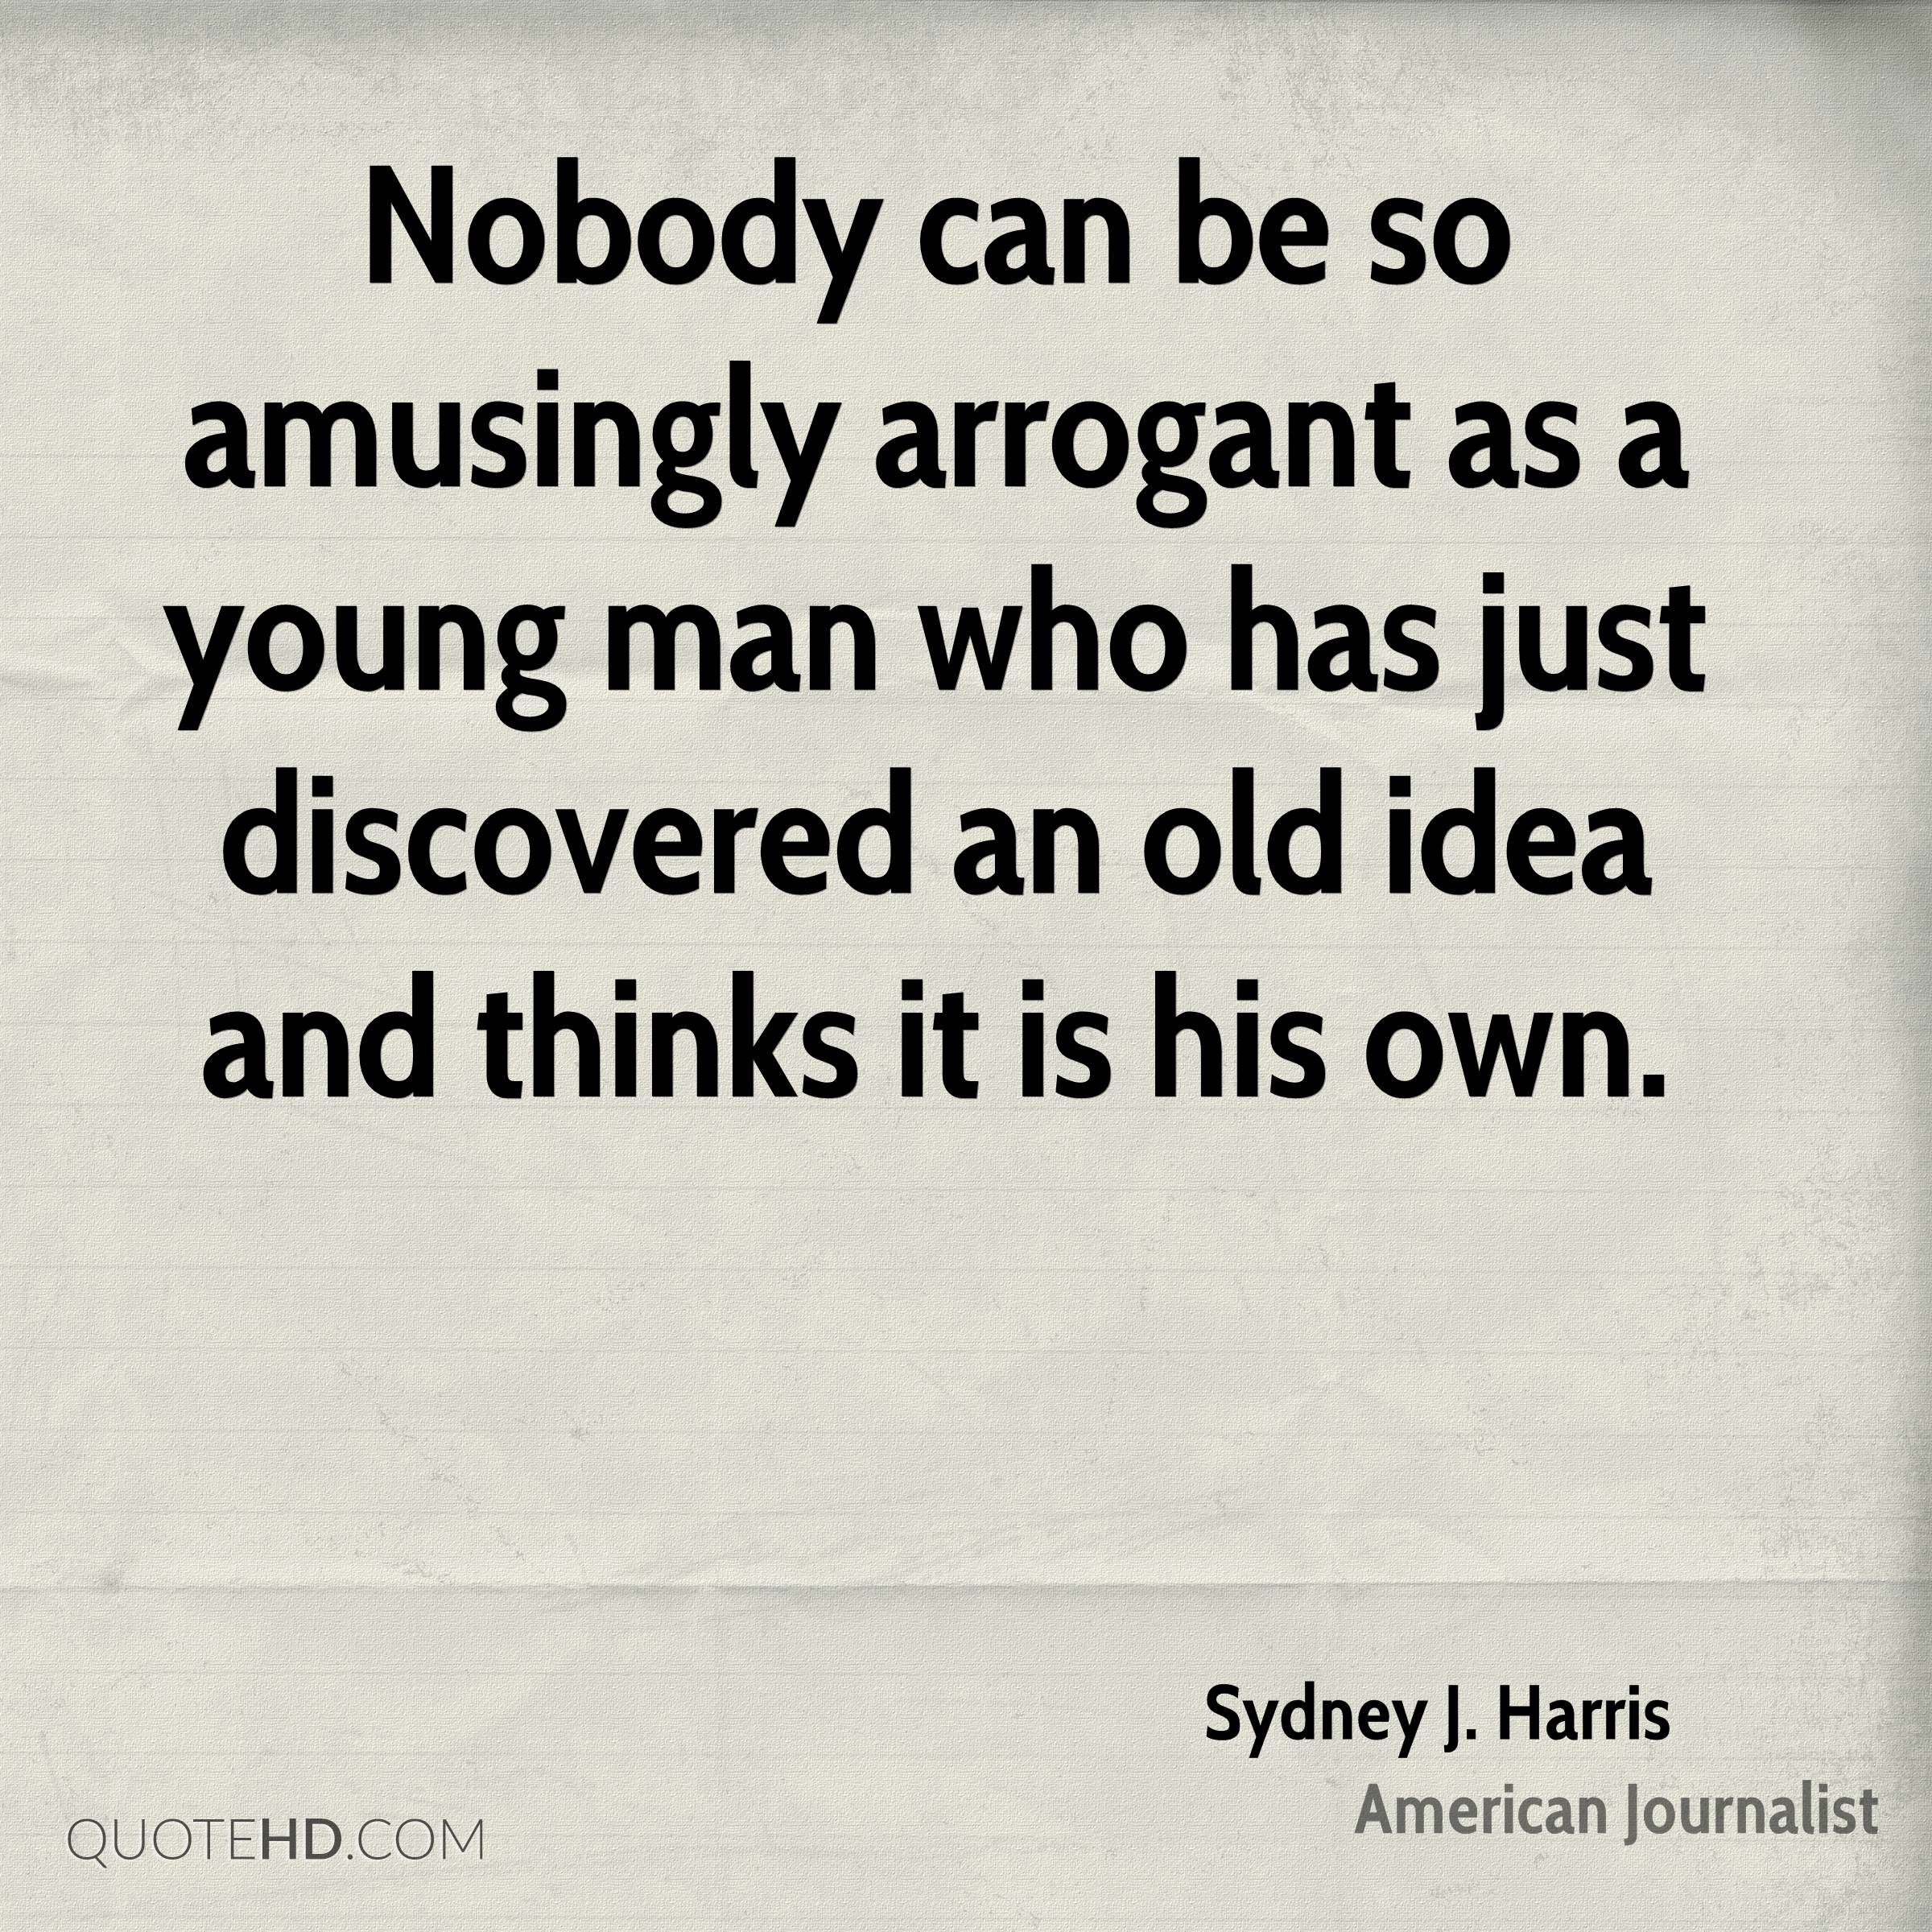 Nobody can be so amusingly arrogant as a young man who has just discovered an old idea and thinks it is his own.